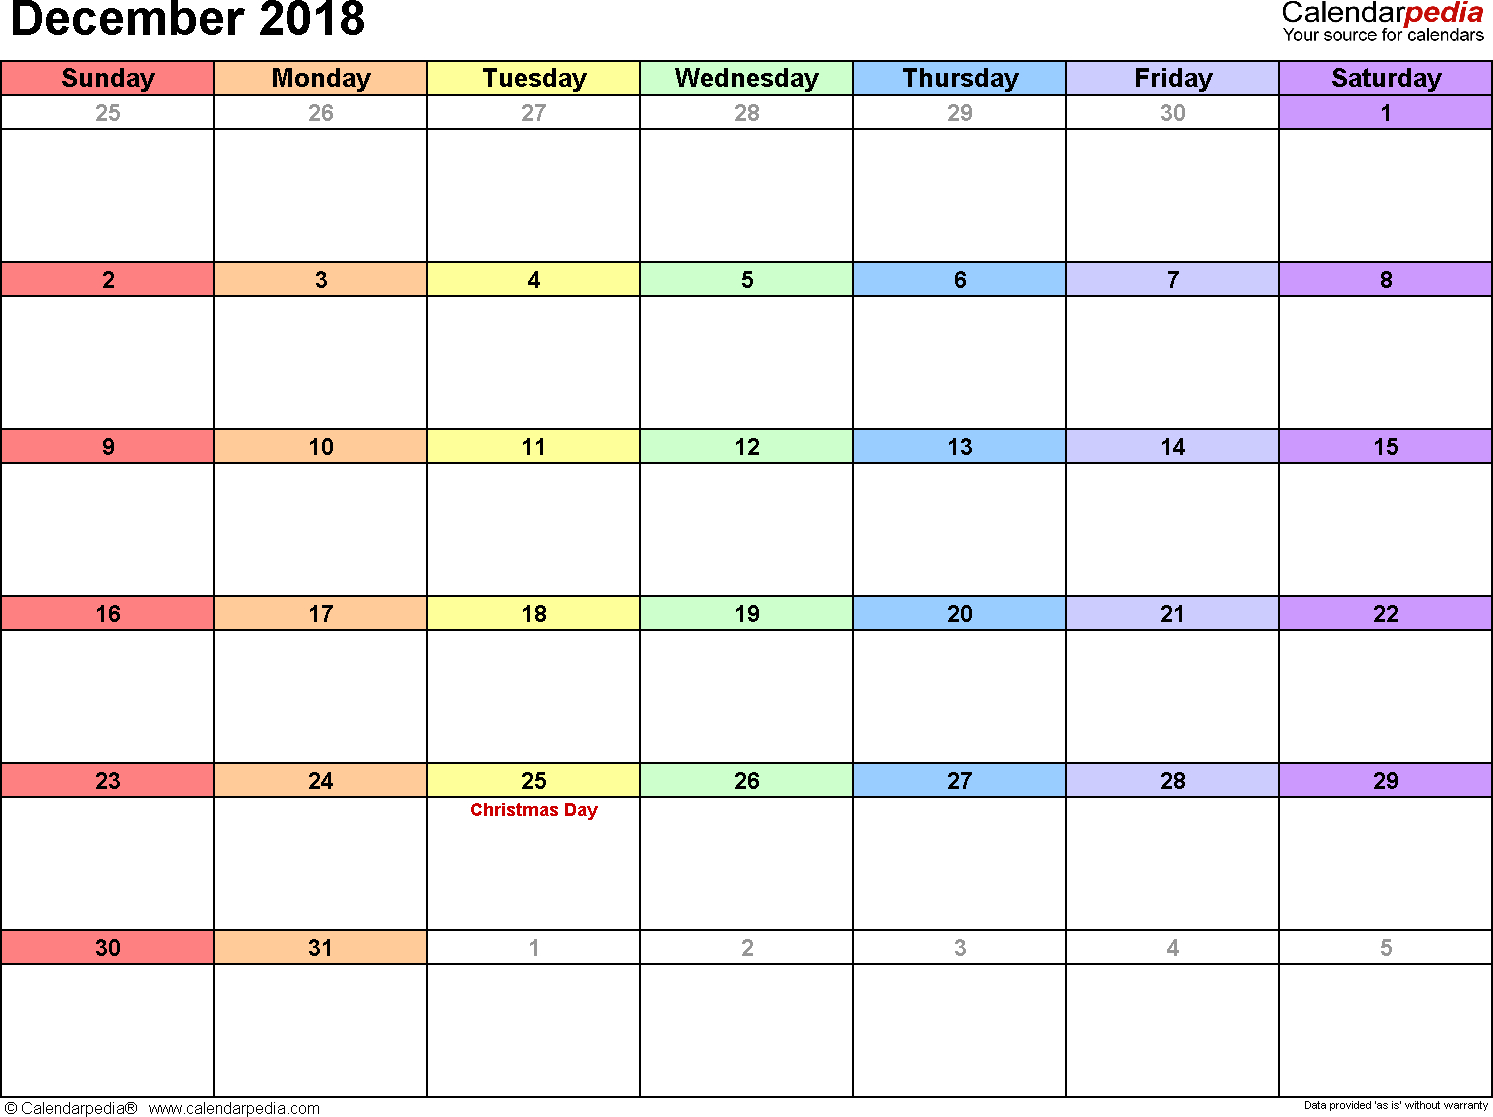 December 2018 Calendars For Word, Excel & Pdf with regard to Blank November And December Calendar